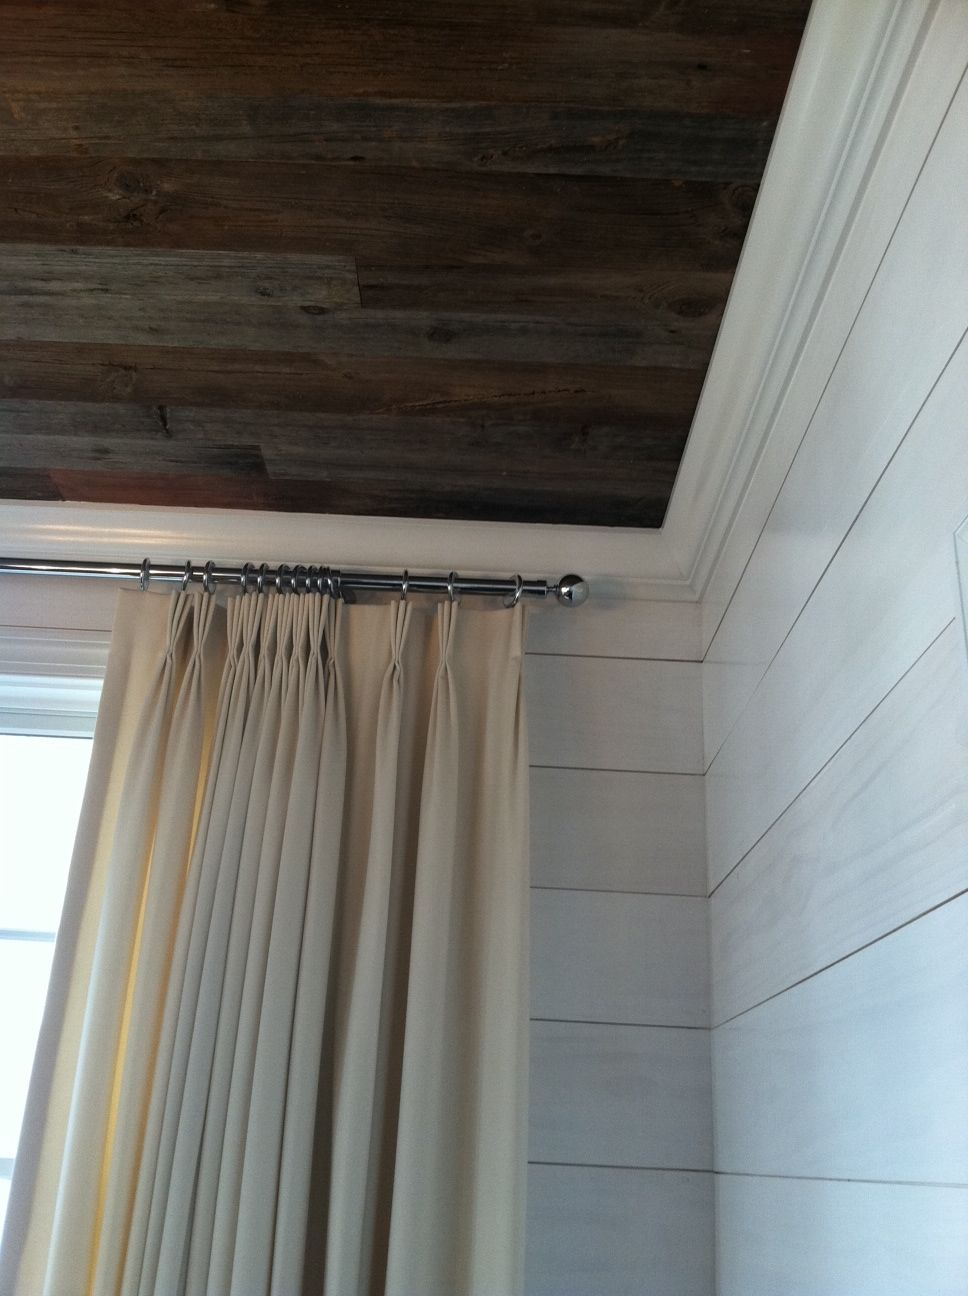 Reclaimed Barn Wood Ceiling And Whitewashed Shiplap On The Walls By  Christina Kim Interior Design